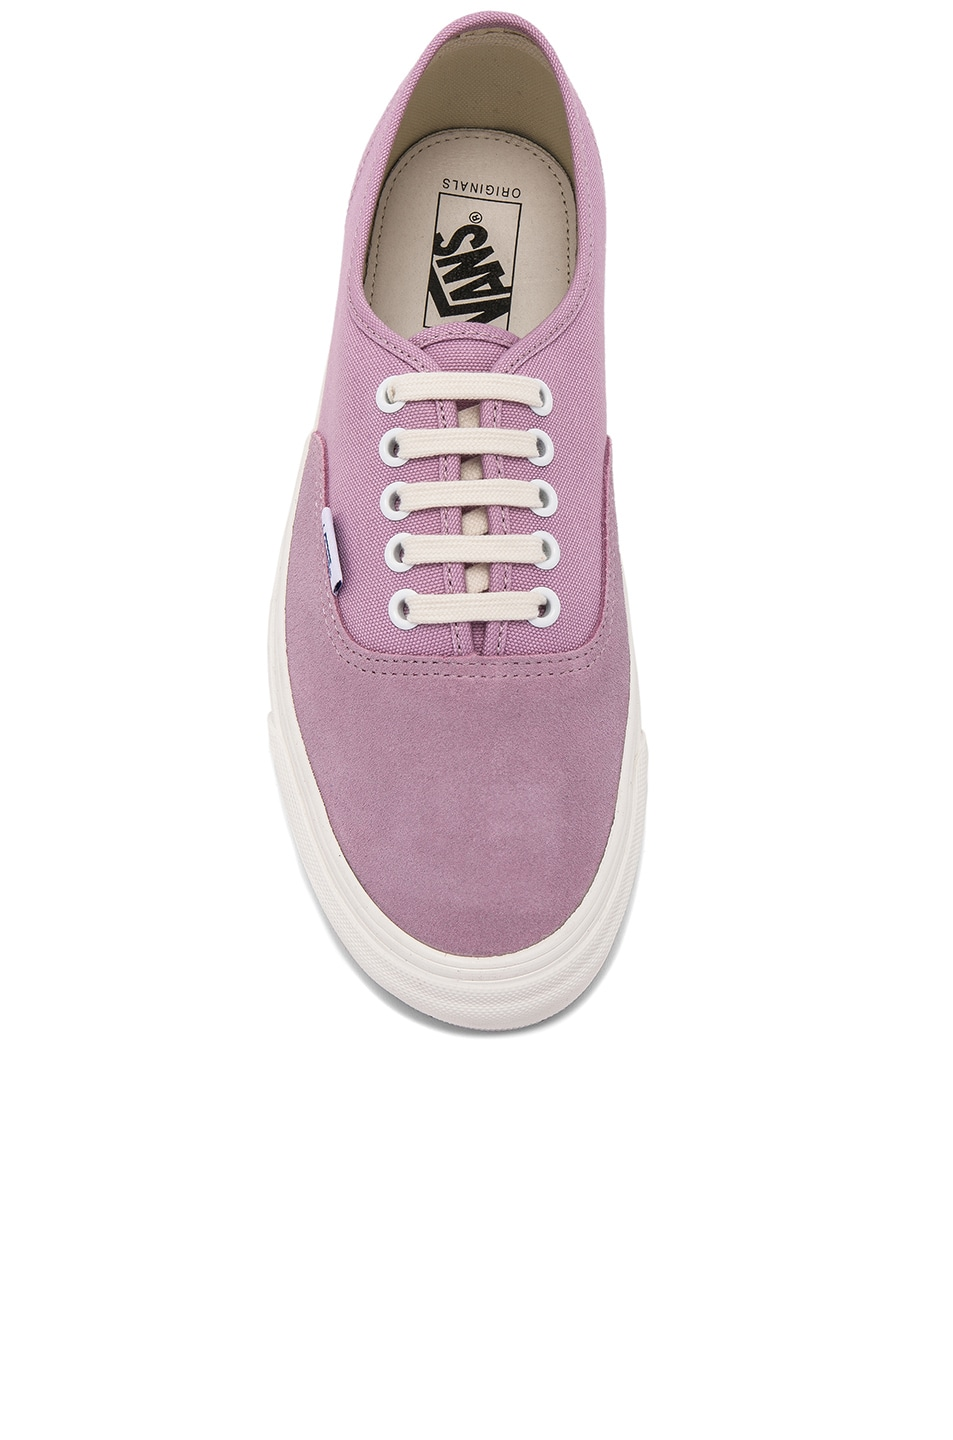 b769e3248ae1 Image 4 of Vans Vault Canvas OG Authentic LX in Fragrant Lilac